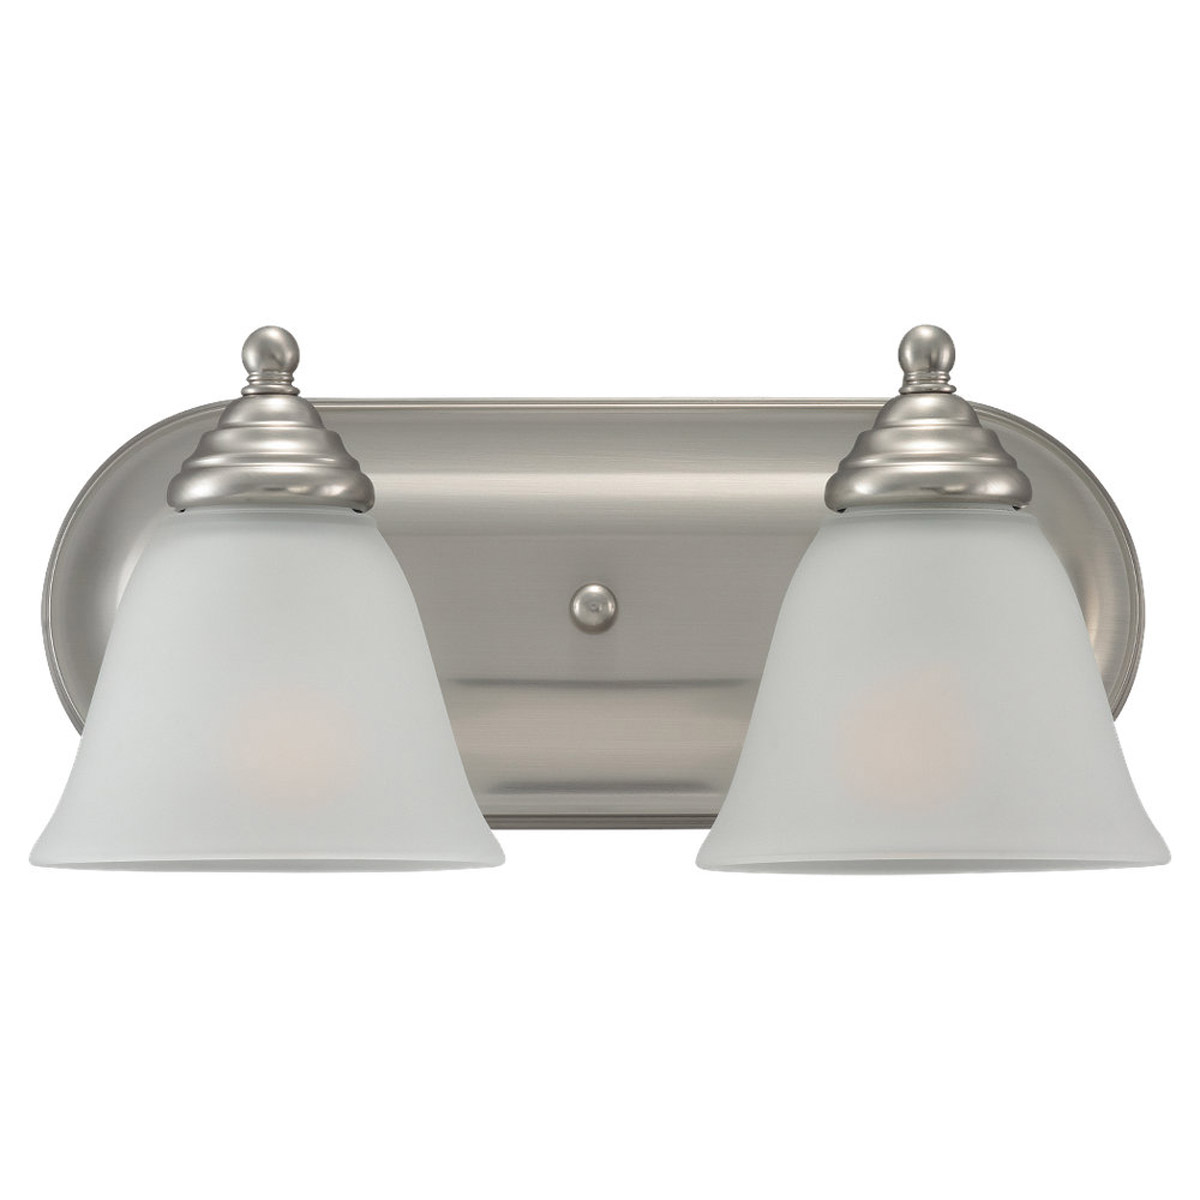 Sea Gull Lighting Albany 2 Light Bath Vanity in Brushed Nickel 44576-962